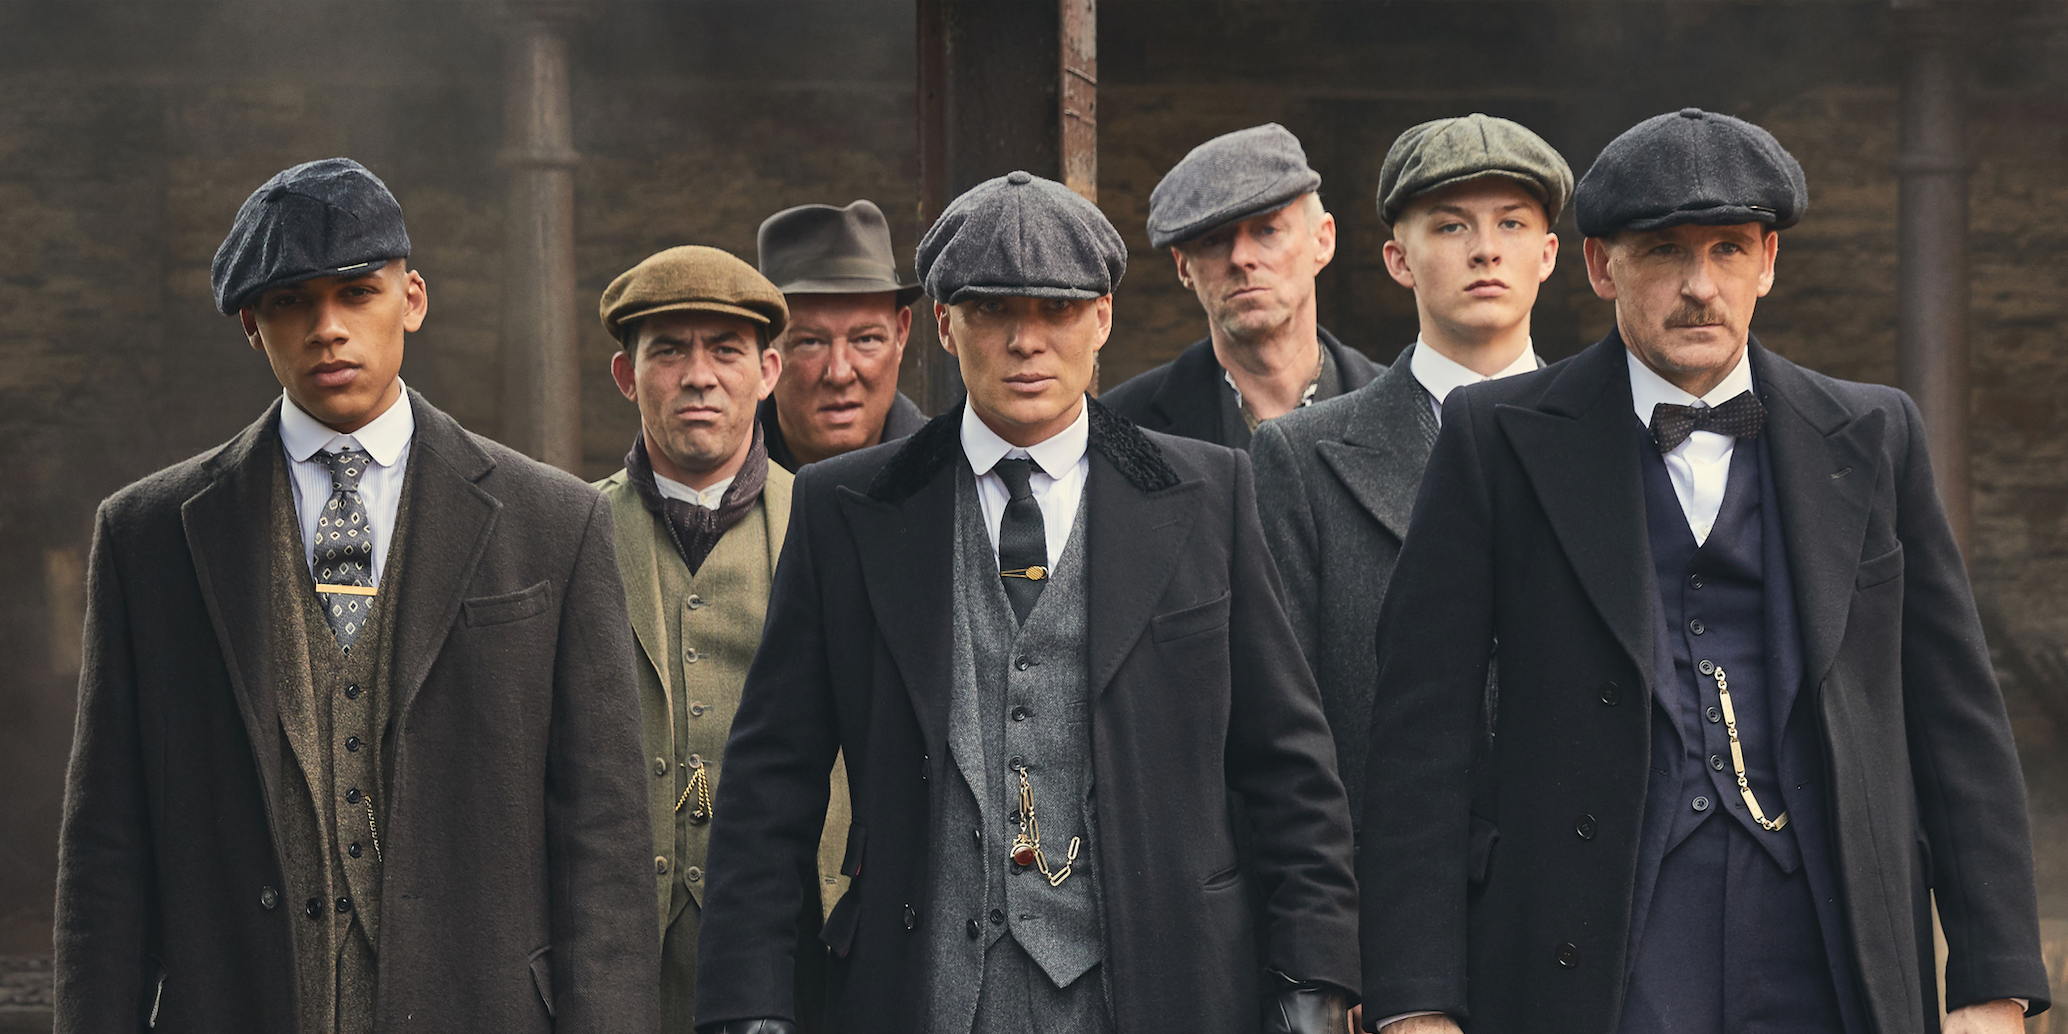 Peaky Blinders, s4, e4: The Peaky Blinders gang